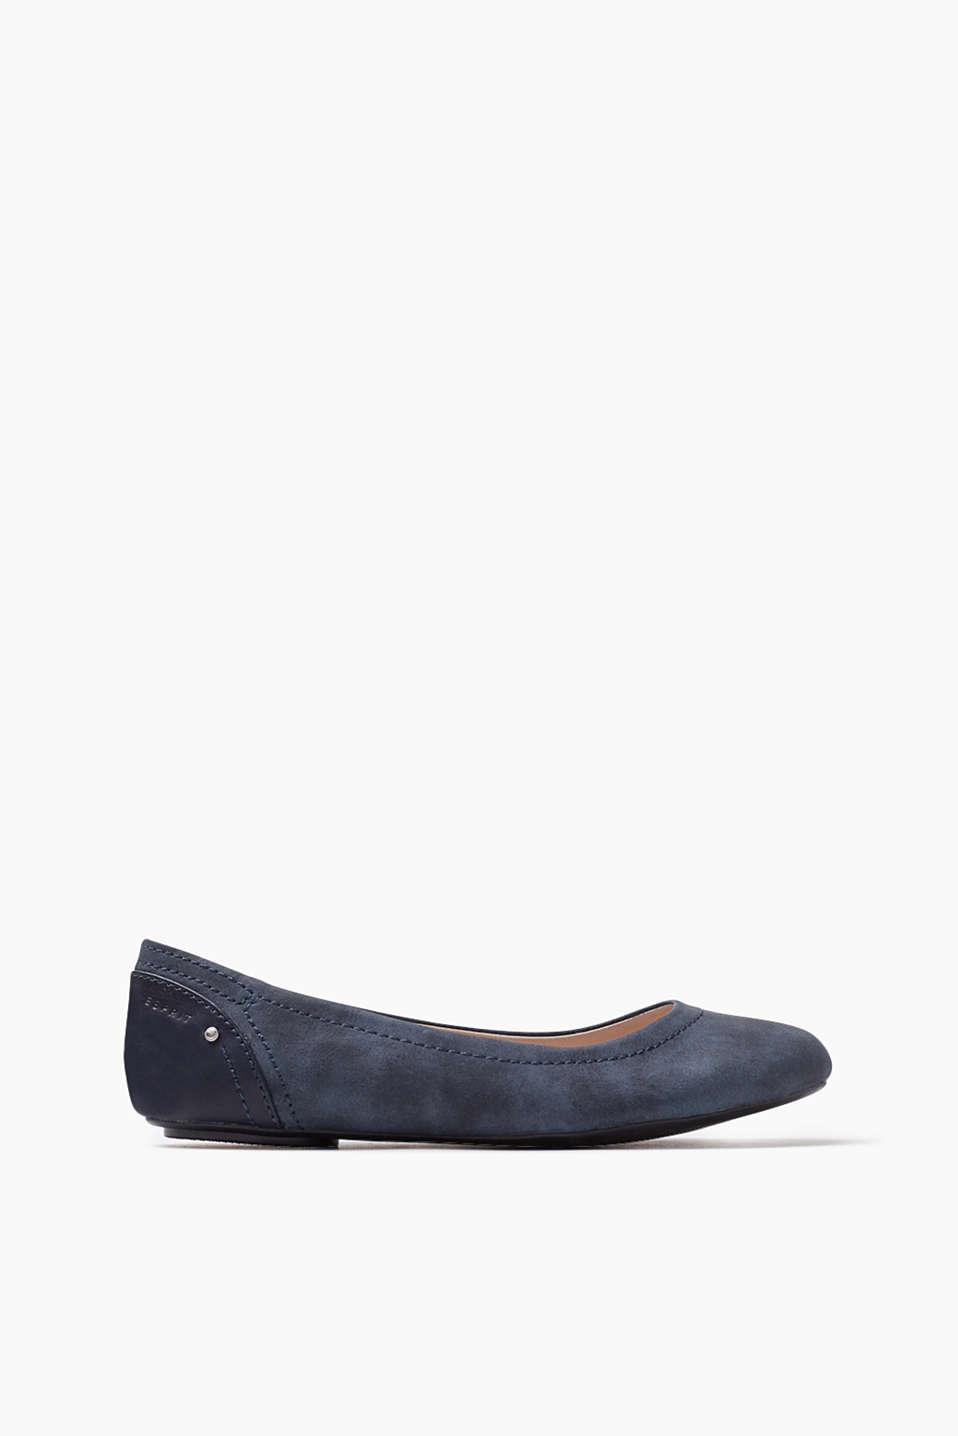 Sporty faux leather flats, PeTa-certified, VEGAN